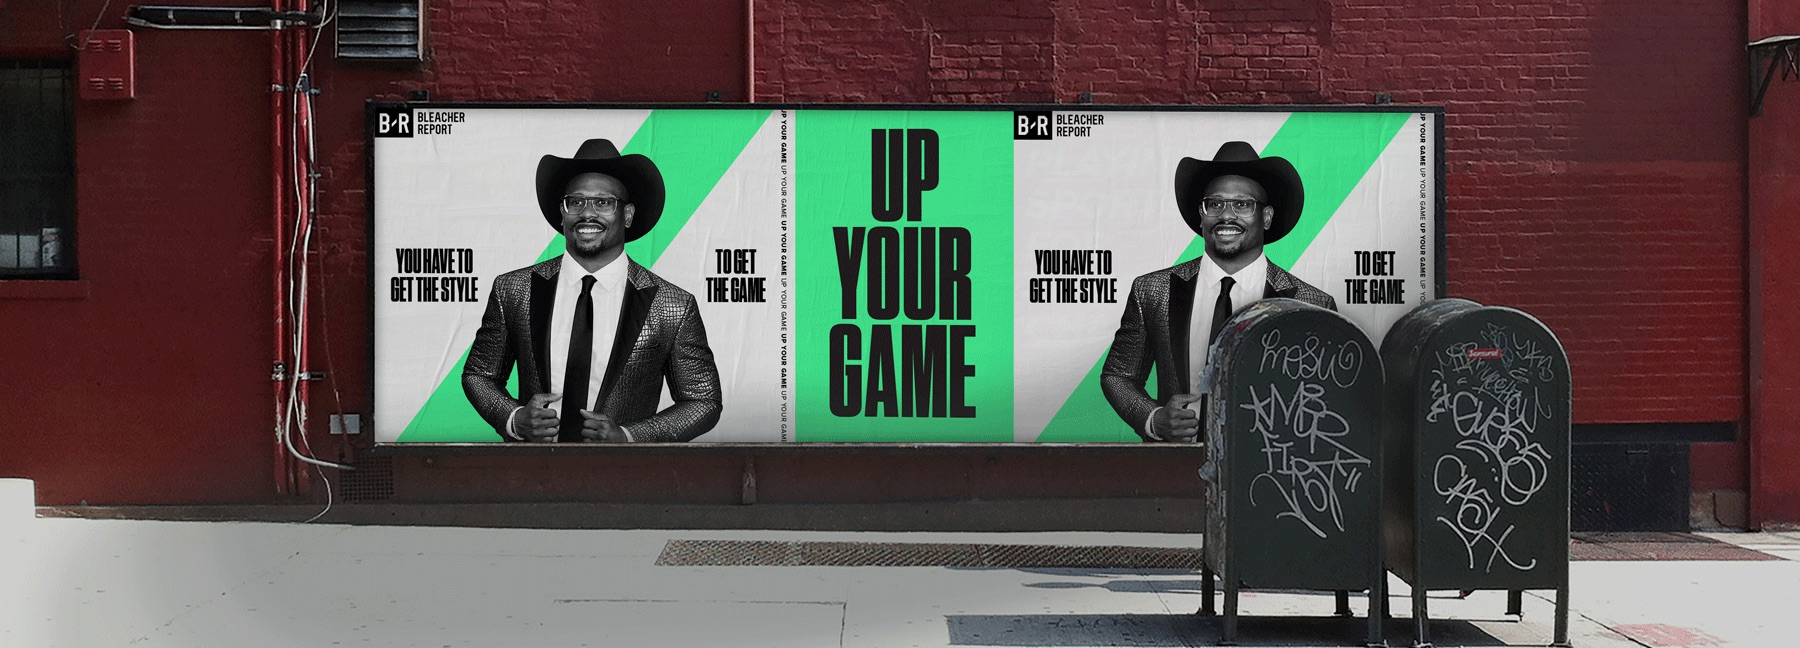 Thumbnail for Up Your Game